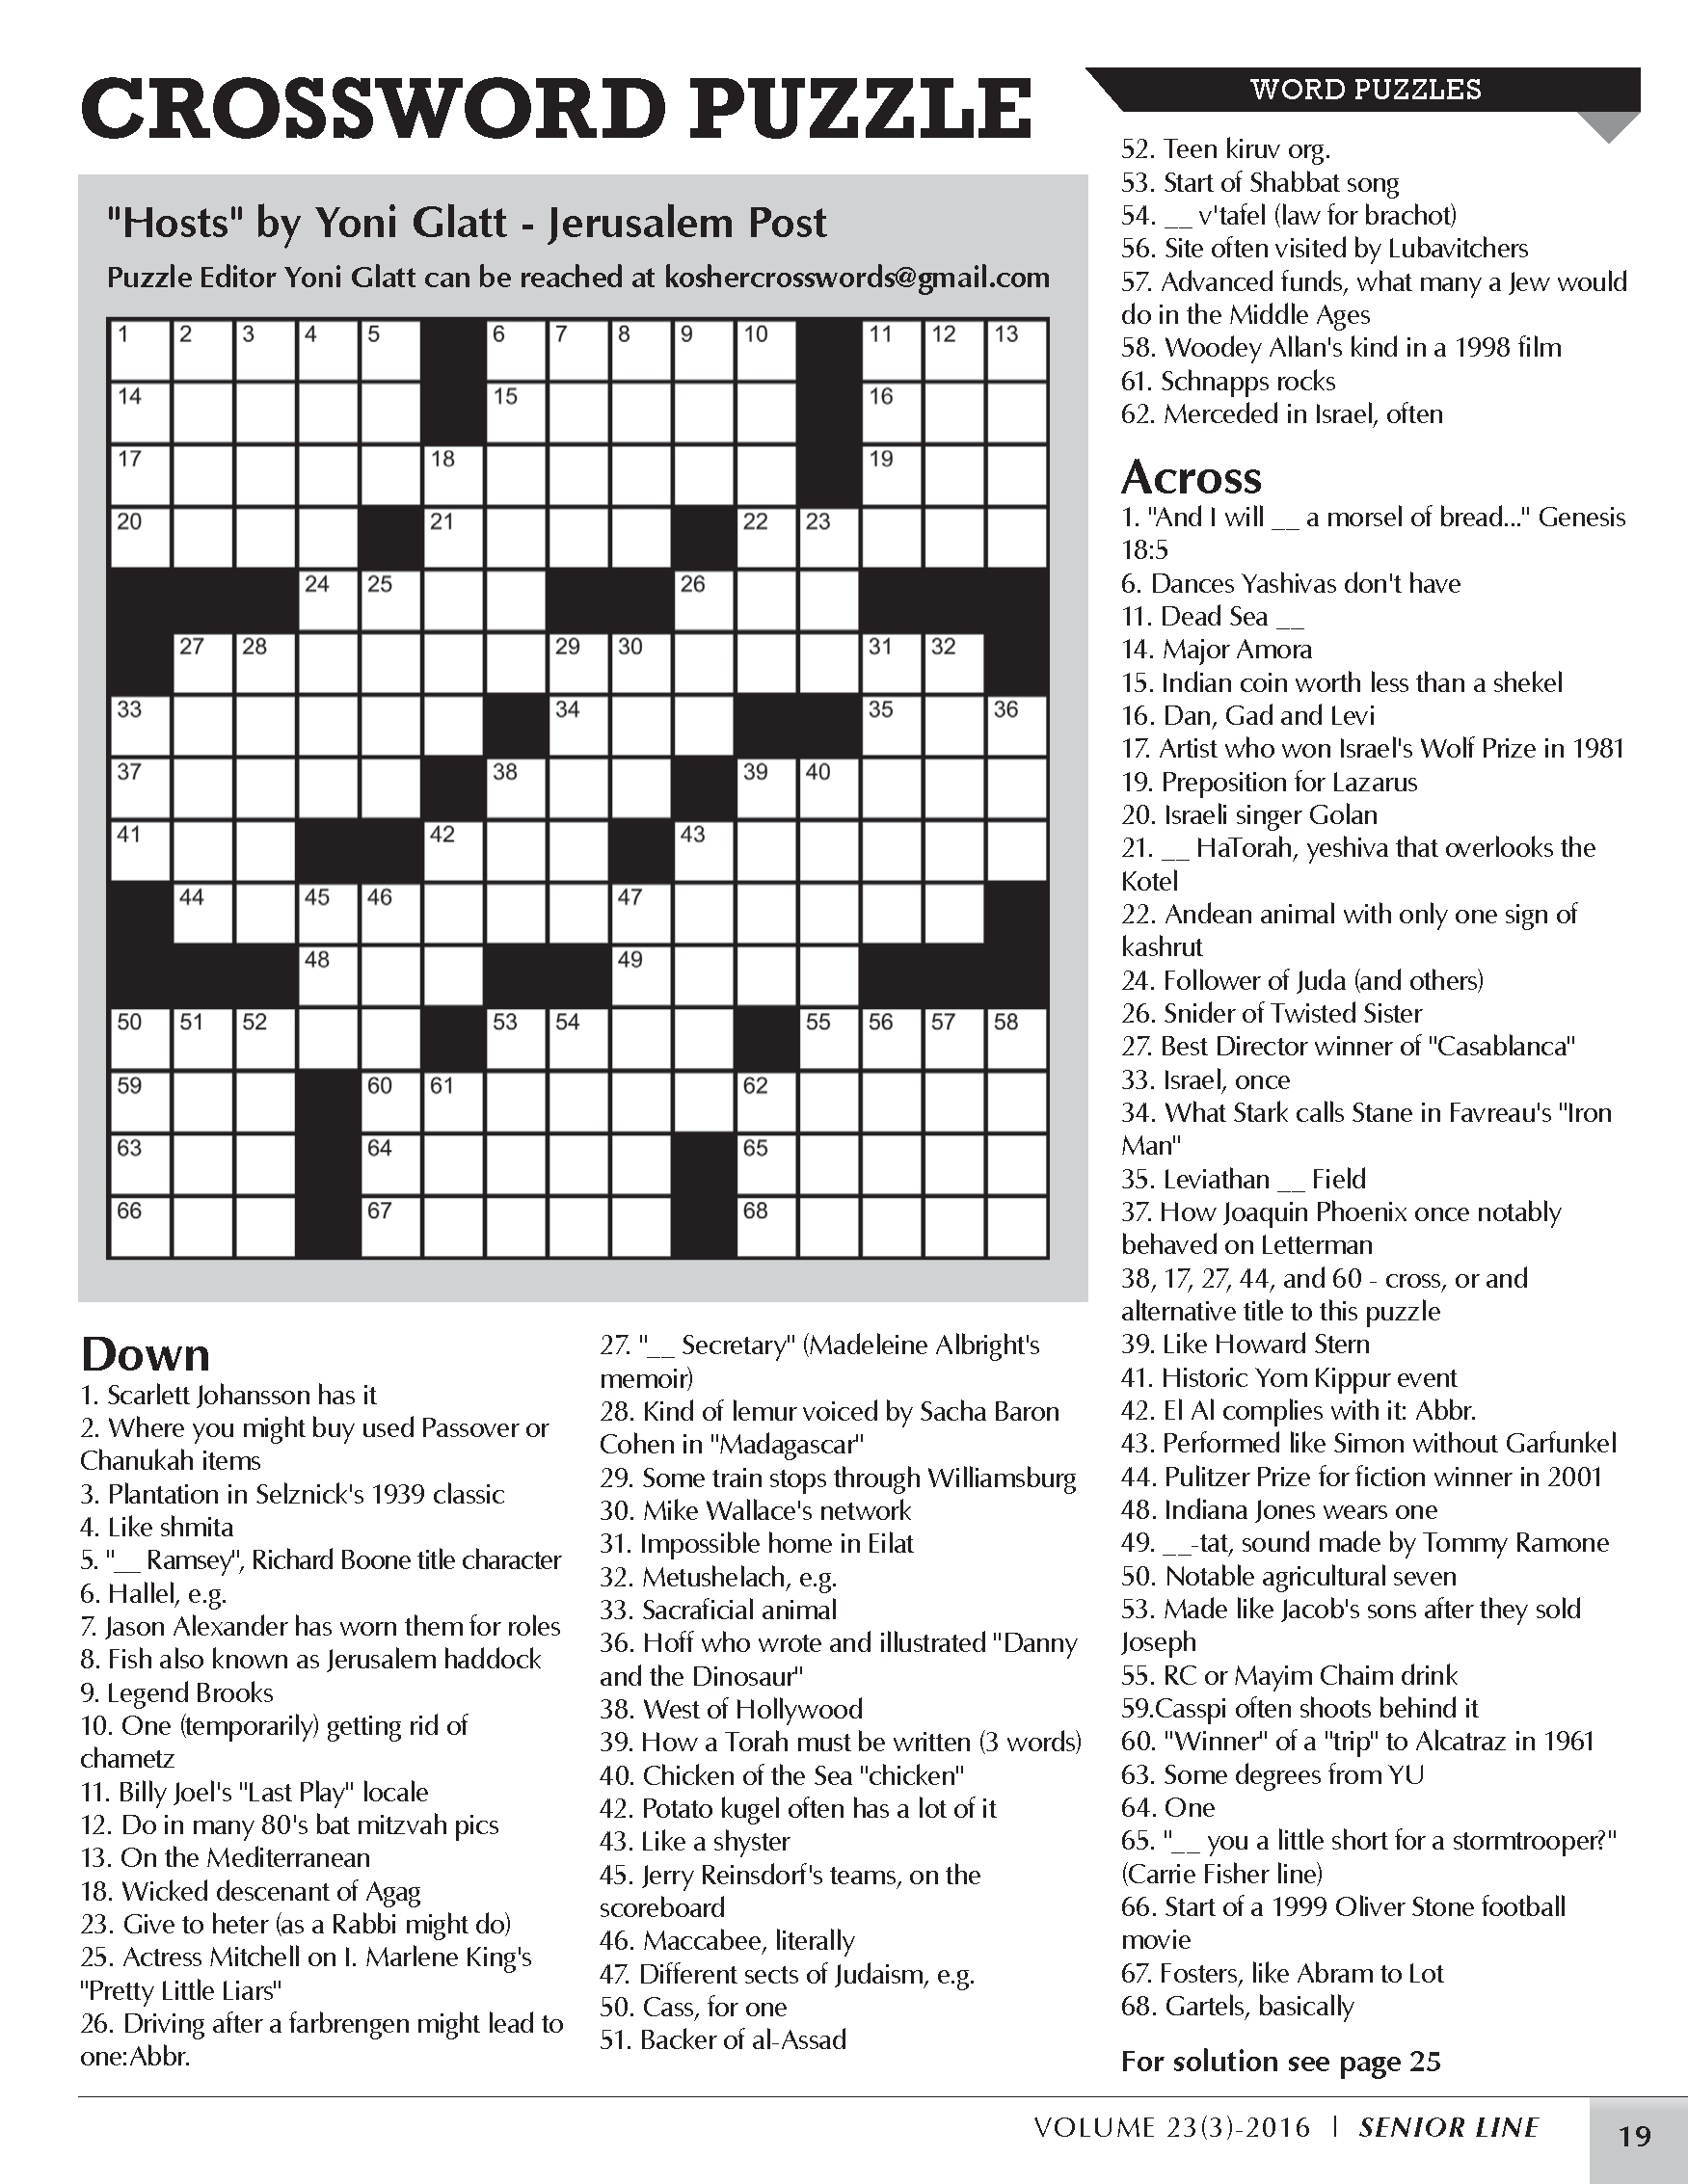 Crossword Puzzle To Test Your Vocabulary Skills